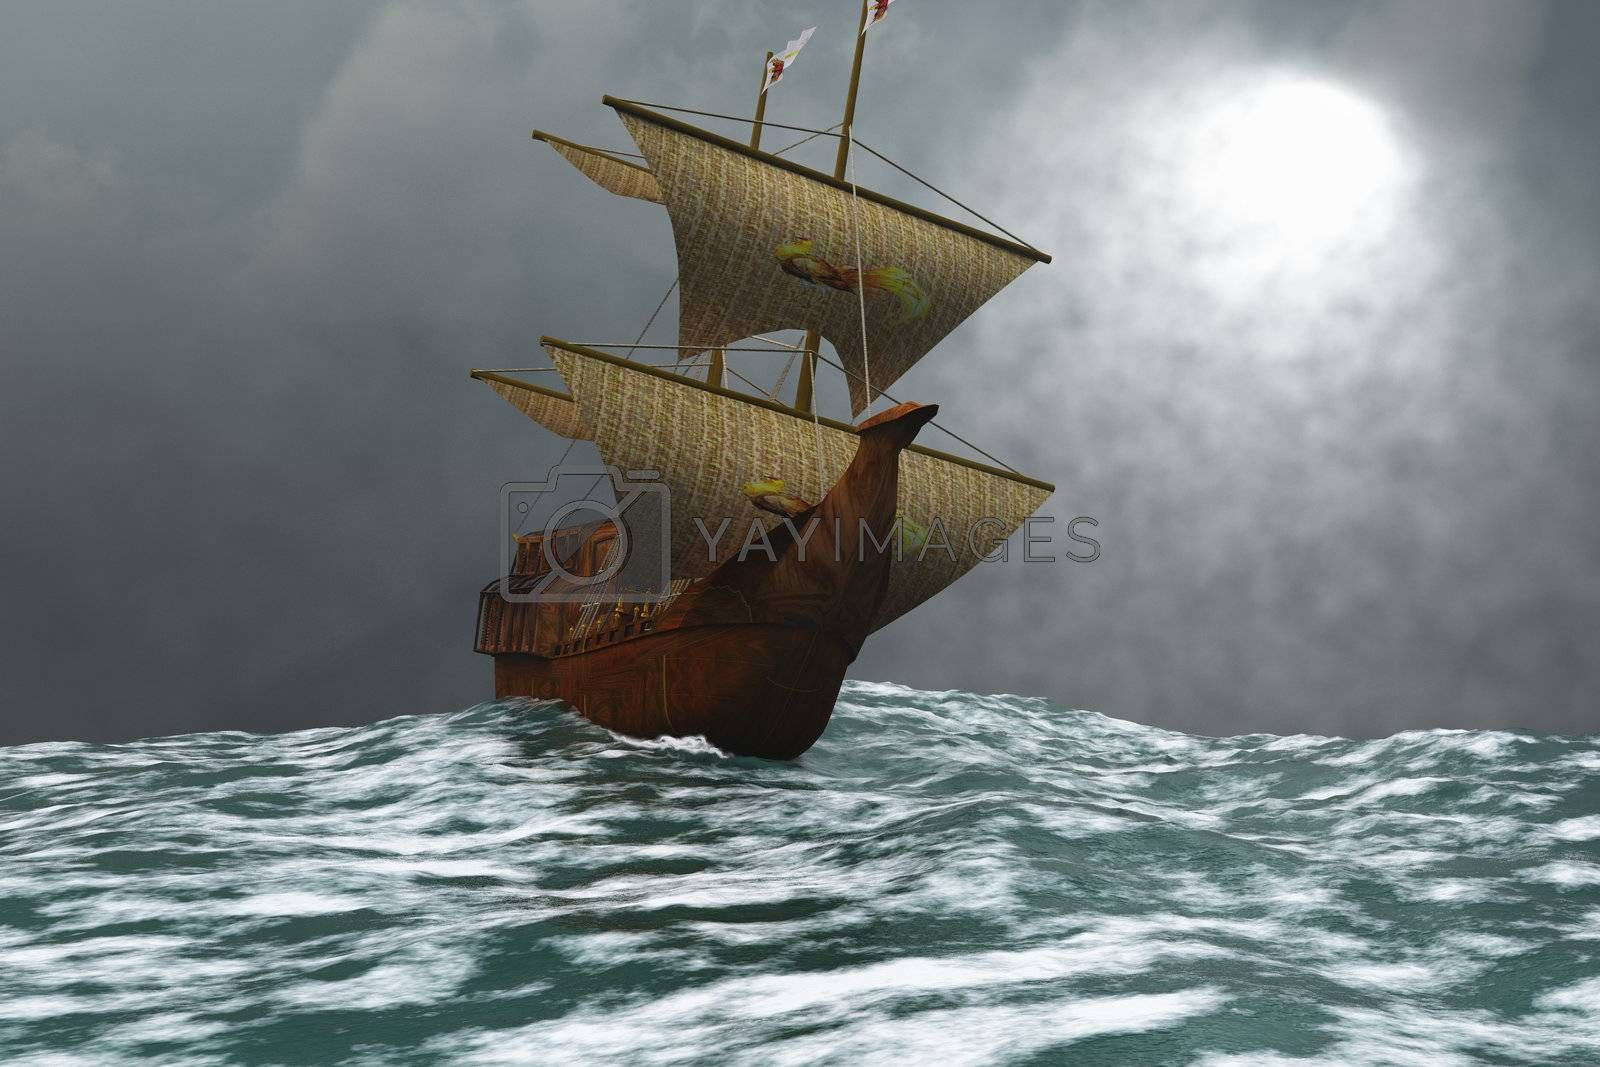 A sailing vessel navigates the ocean waves in stormy weather.